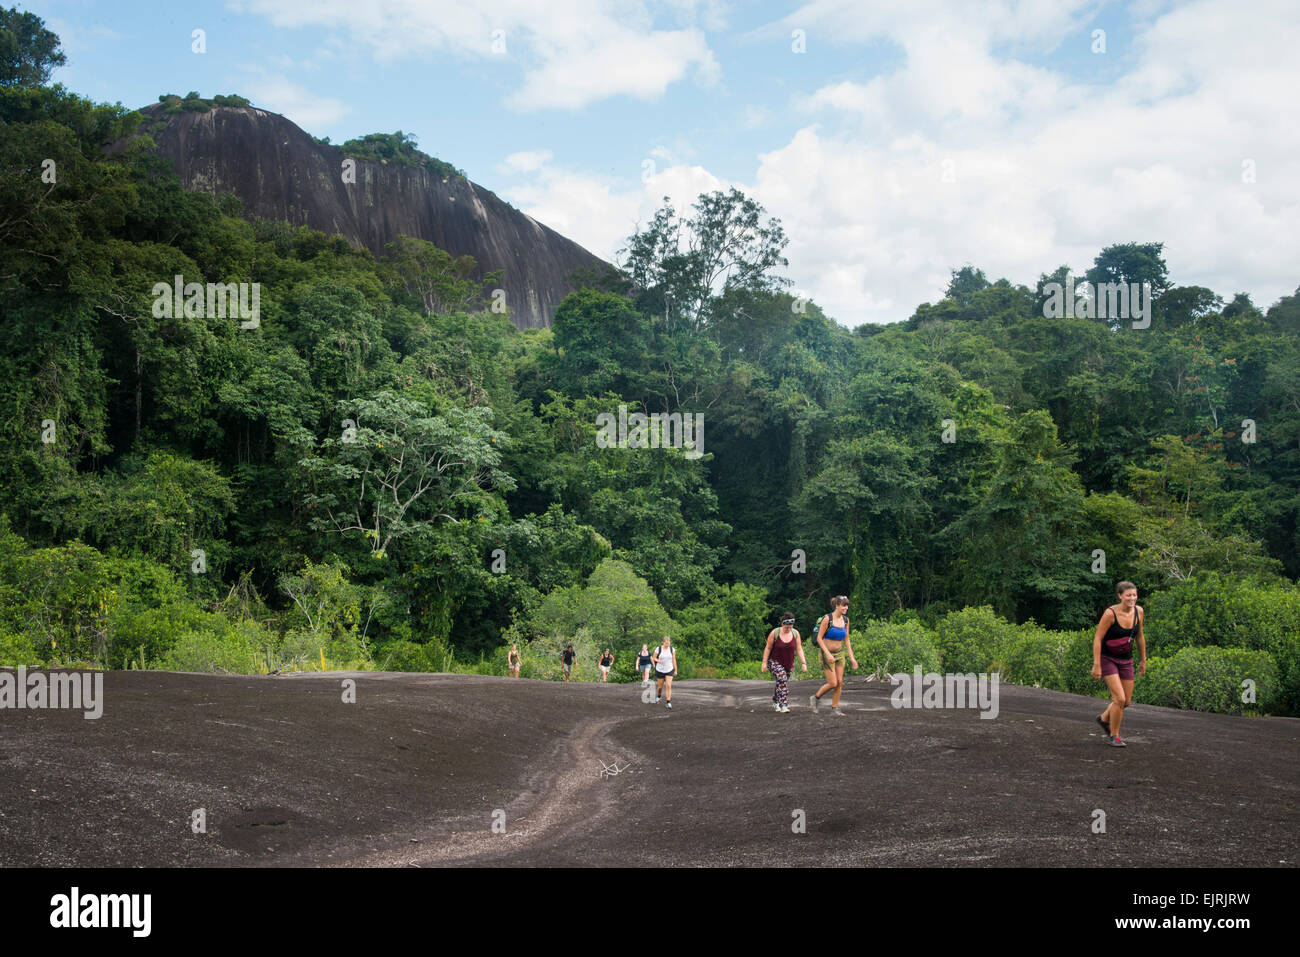 Hikers on Voltzberg Mountain, Central Suriname Nature Reserve, Suriname Stock Photo